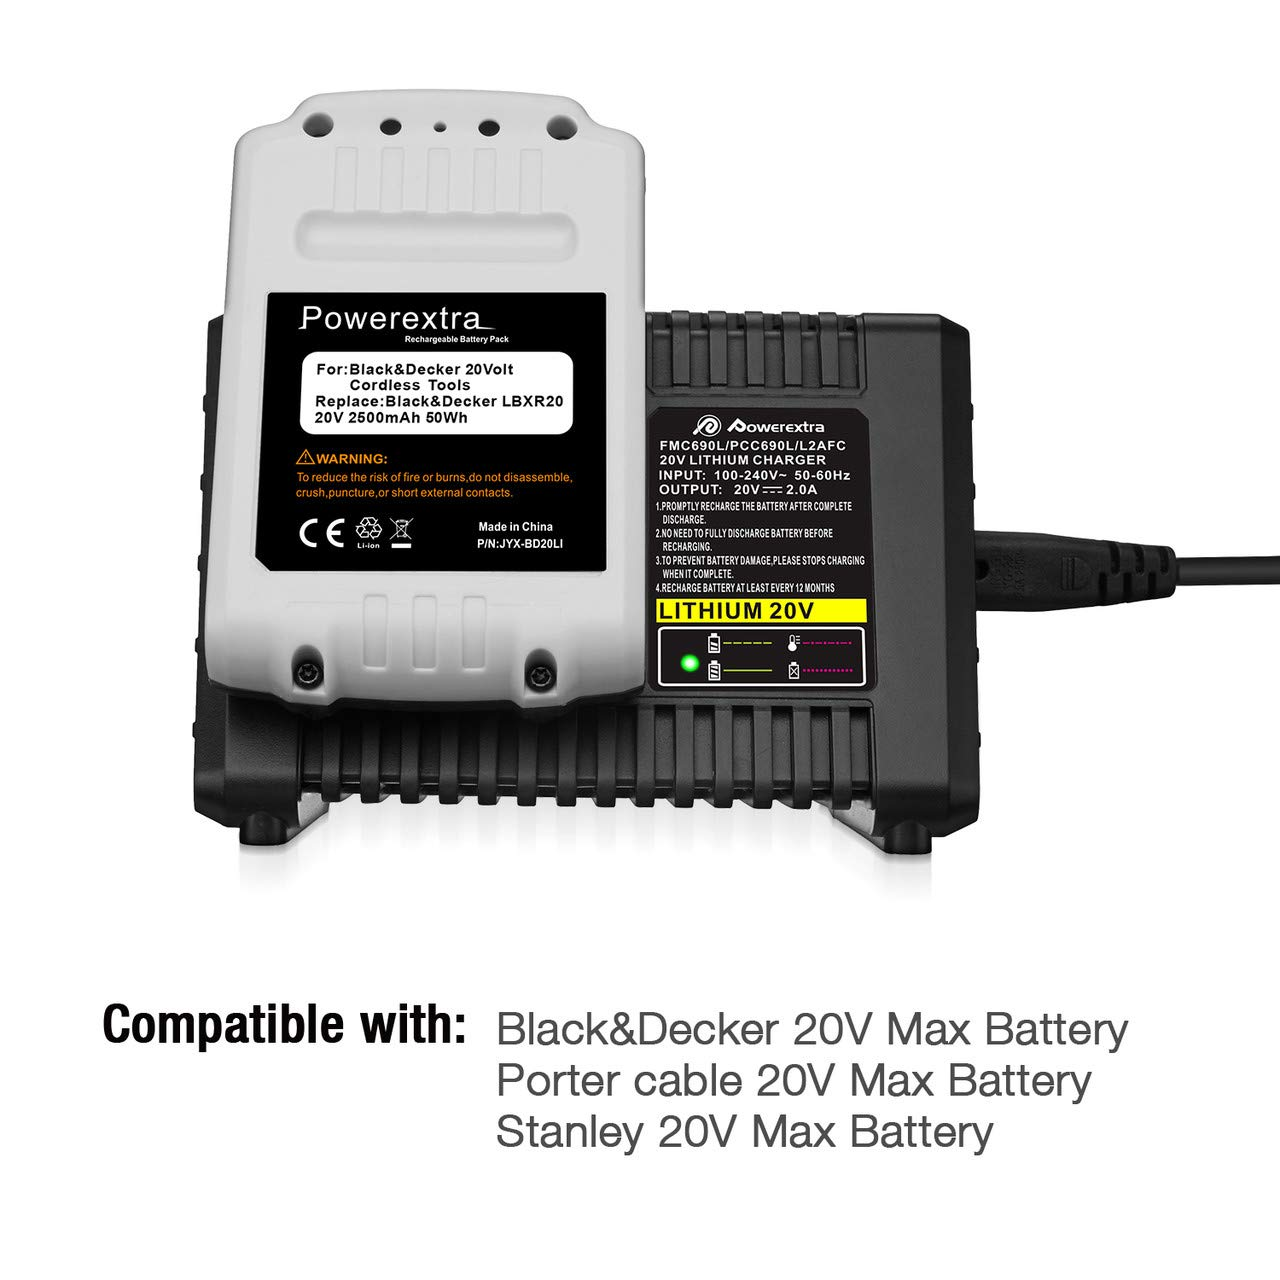 Powerextra 20V Lithium Battery Fast Charger BDCAC202B for Black and Decker 20V Lithium-ion Battery and Porter-Cable 20V Lithium-ion Battery LBXR20 LBXR2020 ...